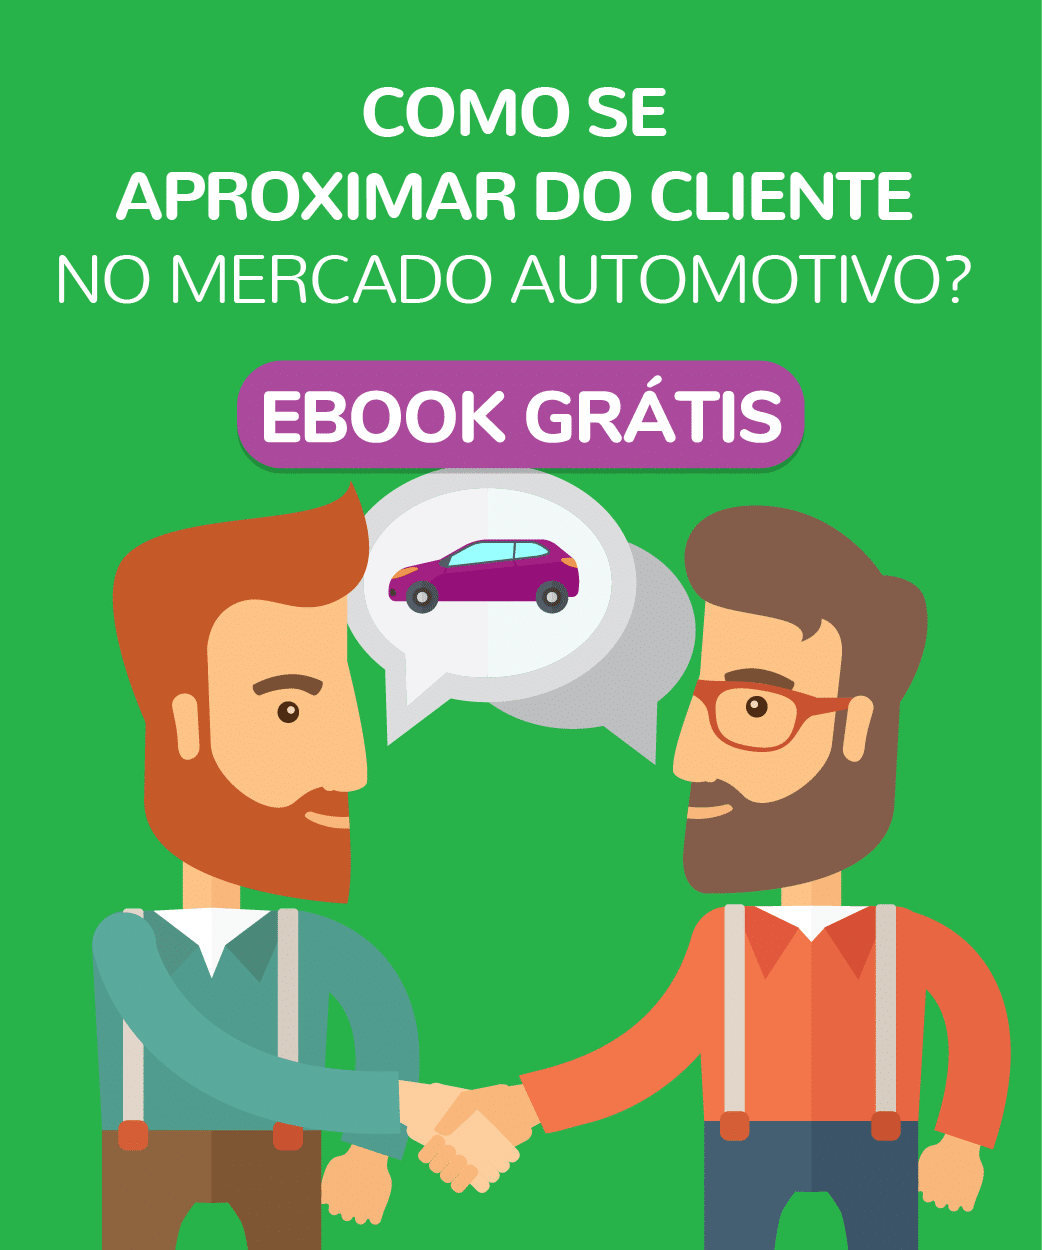 Como se aproximar do cliente no mercado automotivo?